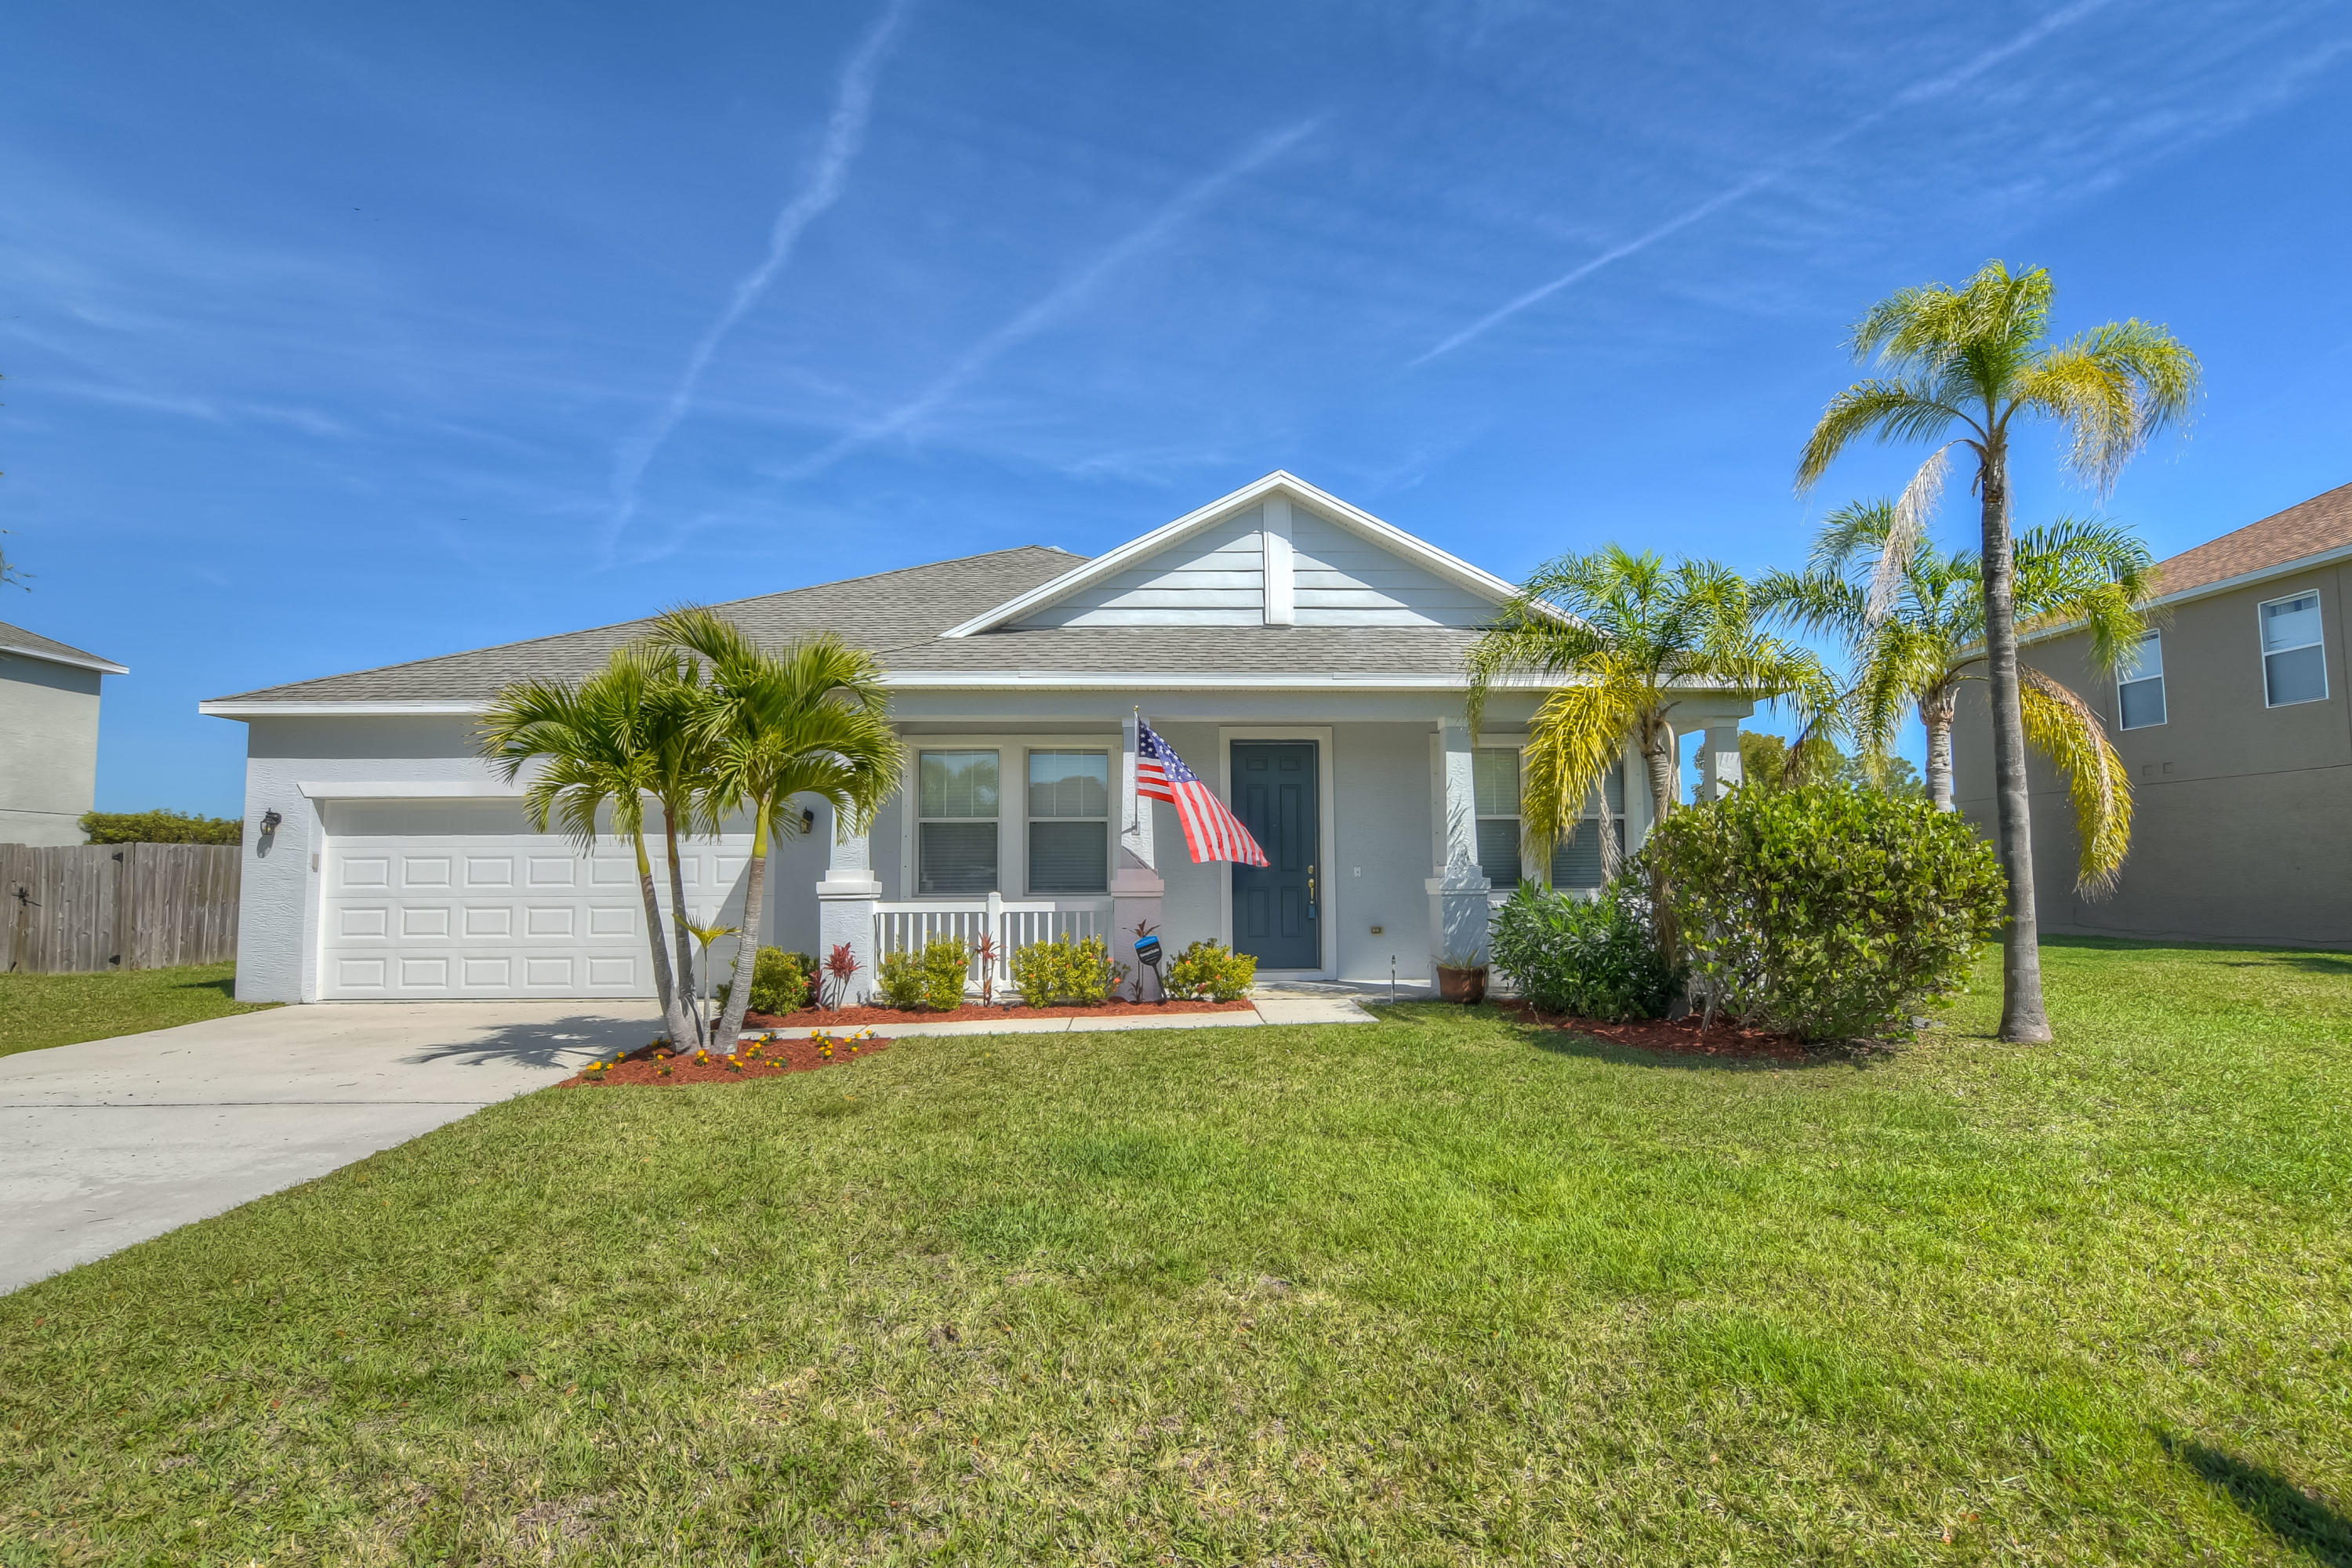 Home for sale in Windy Pines Port Saint Lucie Florida